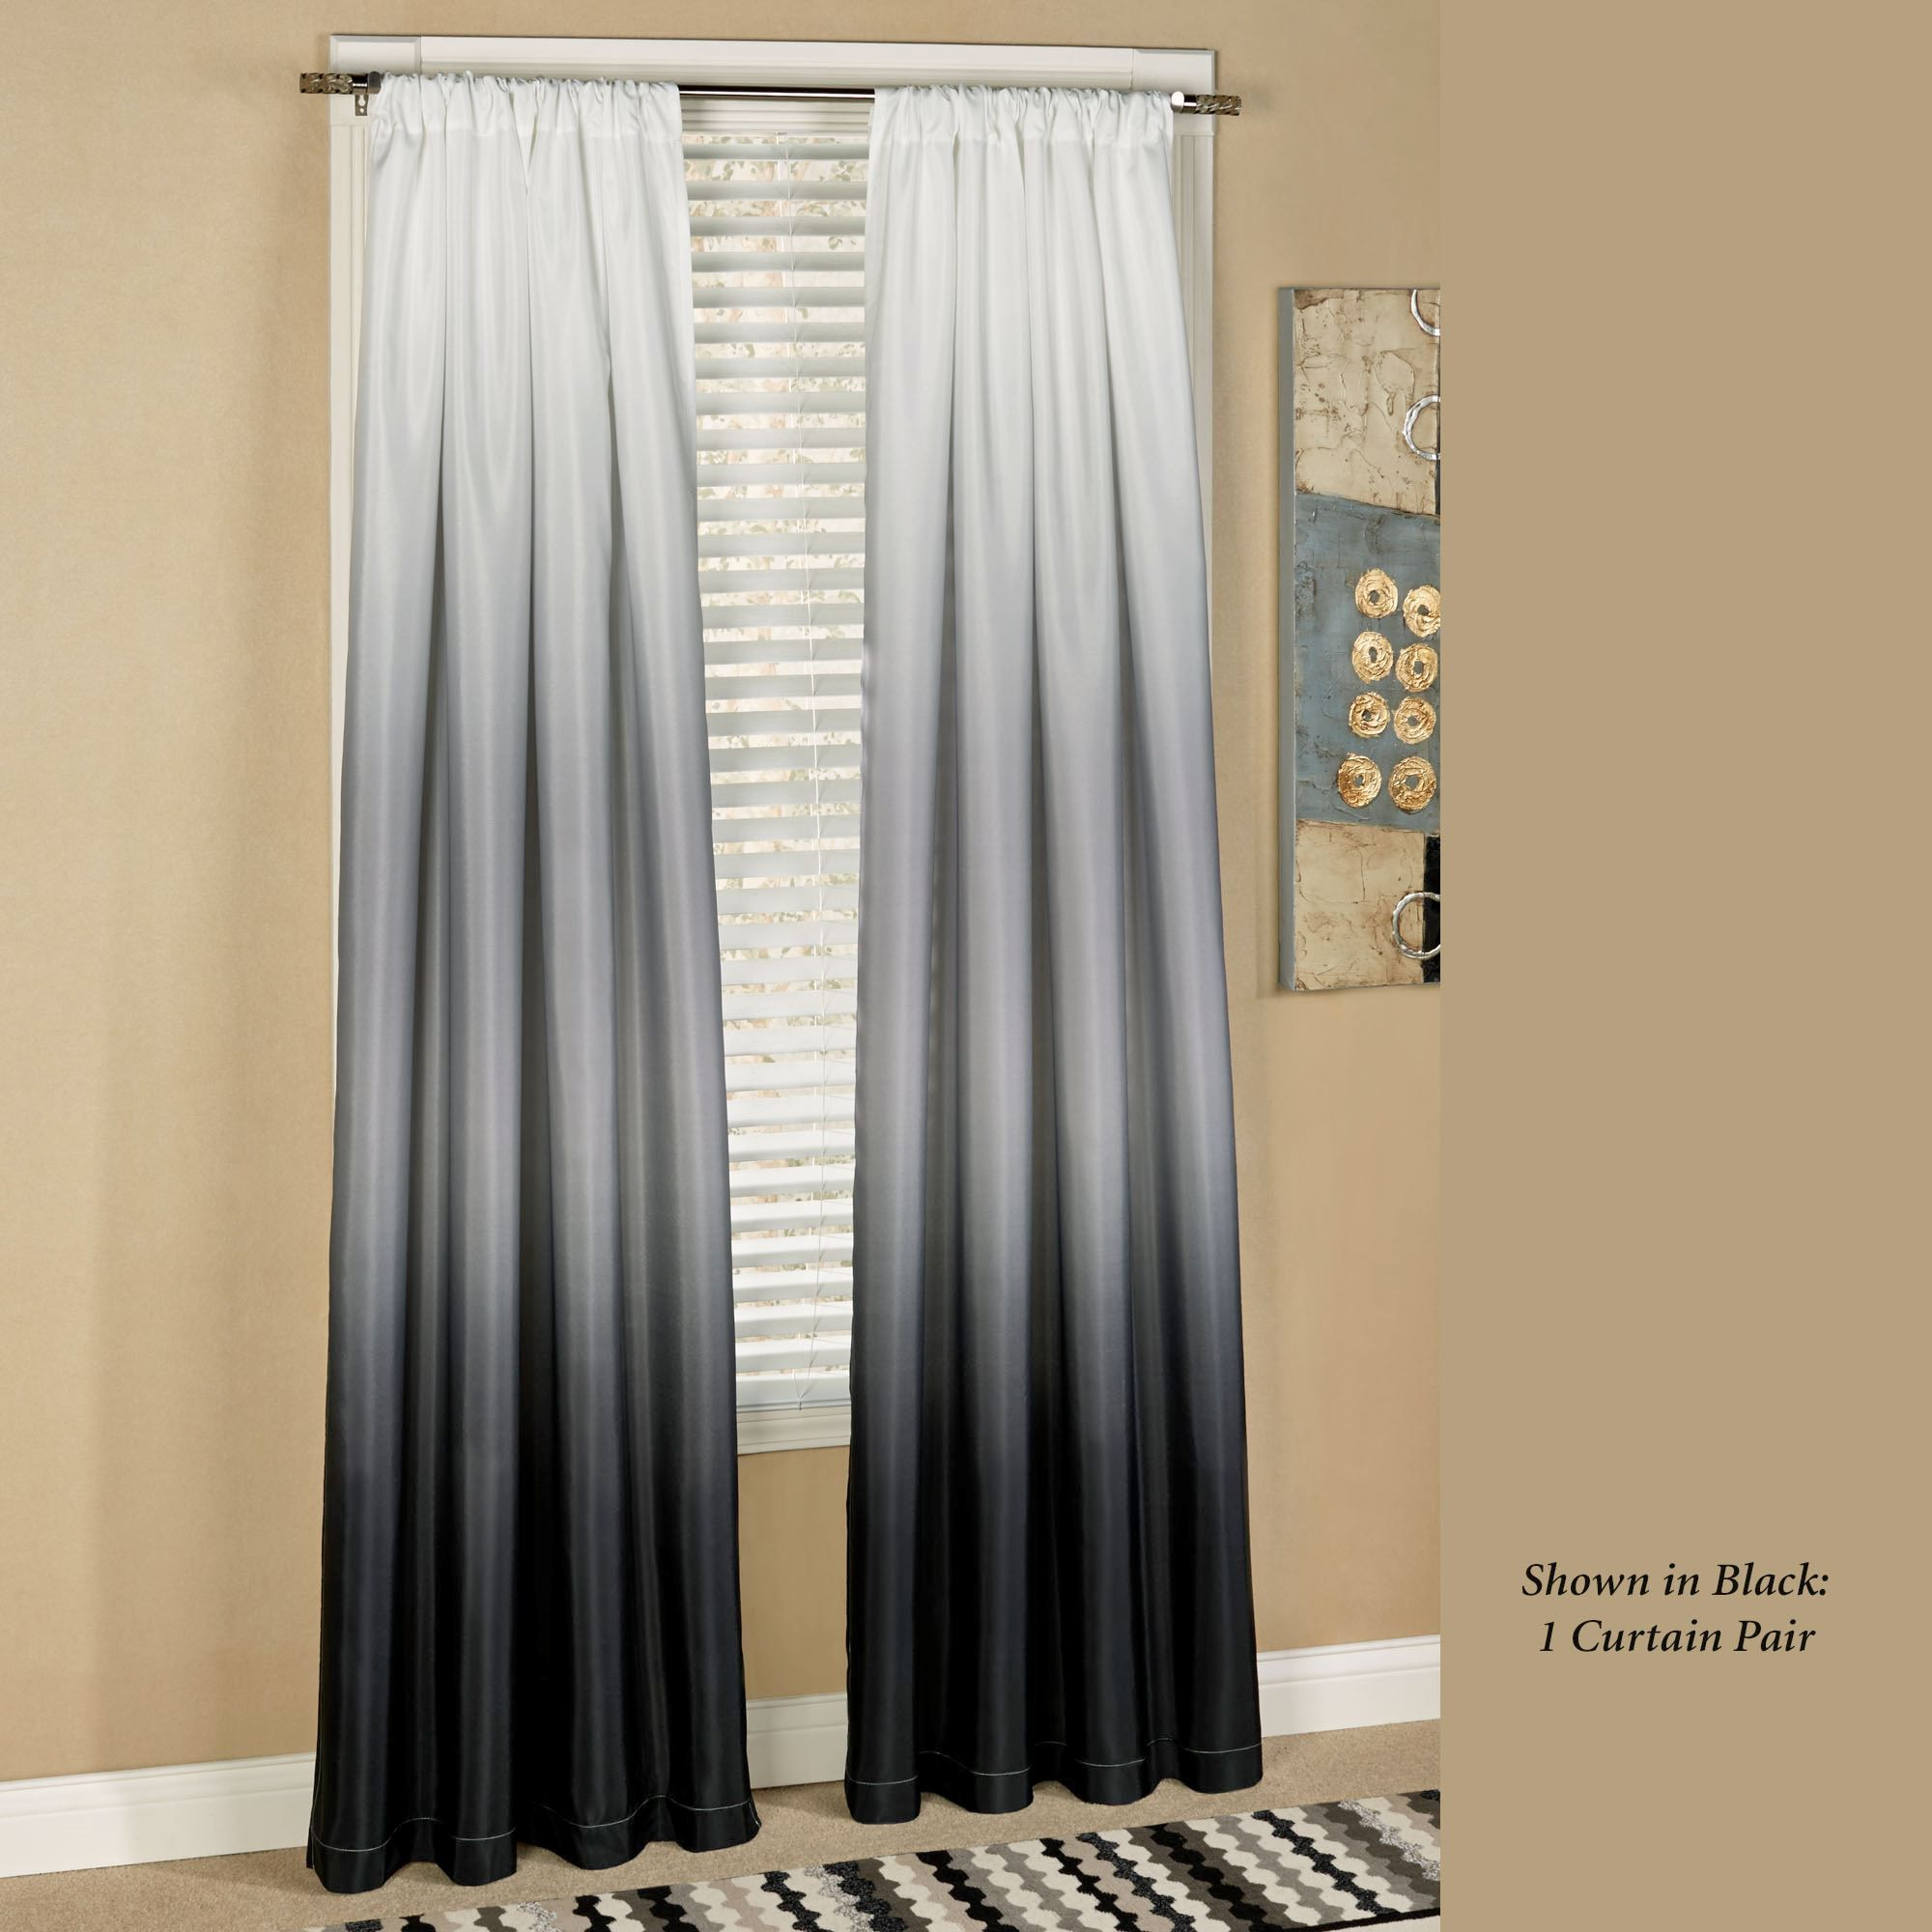 panels room by floral darkening for and decor home thermal curtains drapes sears decoration window kmart beautiful draperies curtain clearance ideas nysben org grommet brown